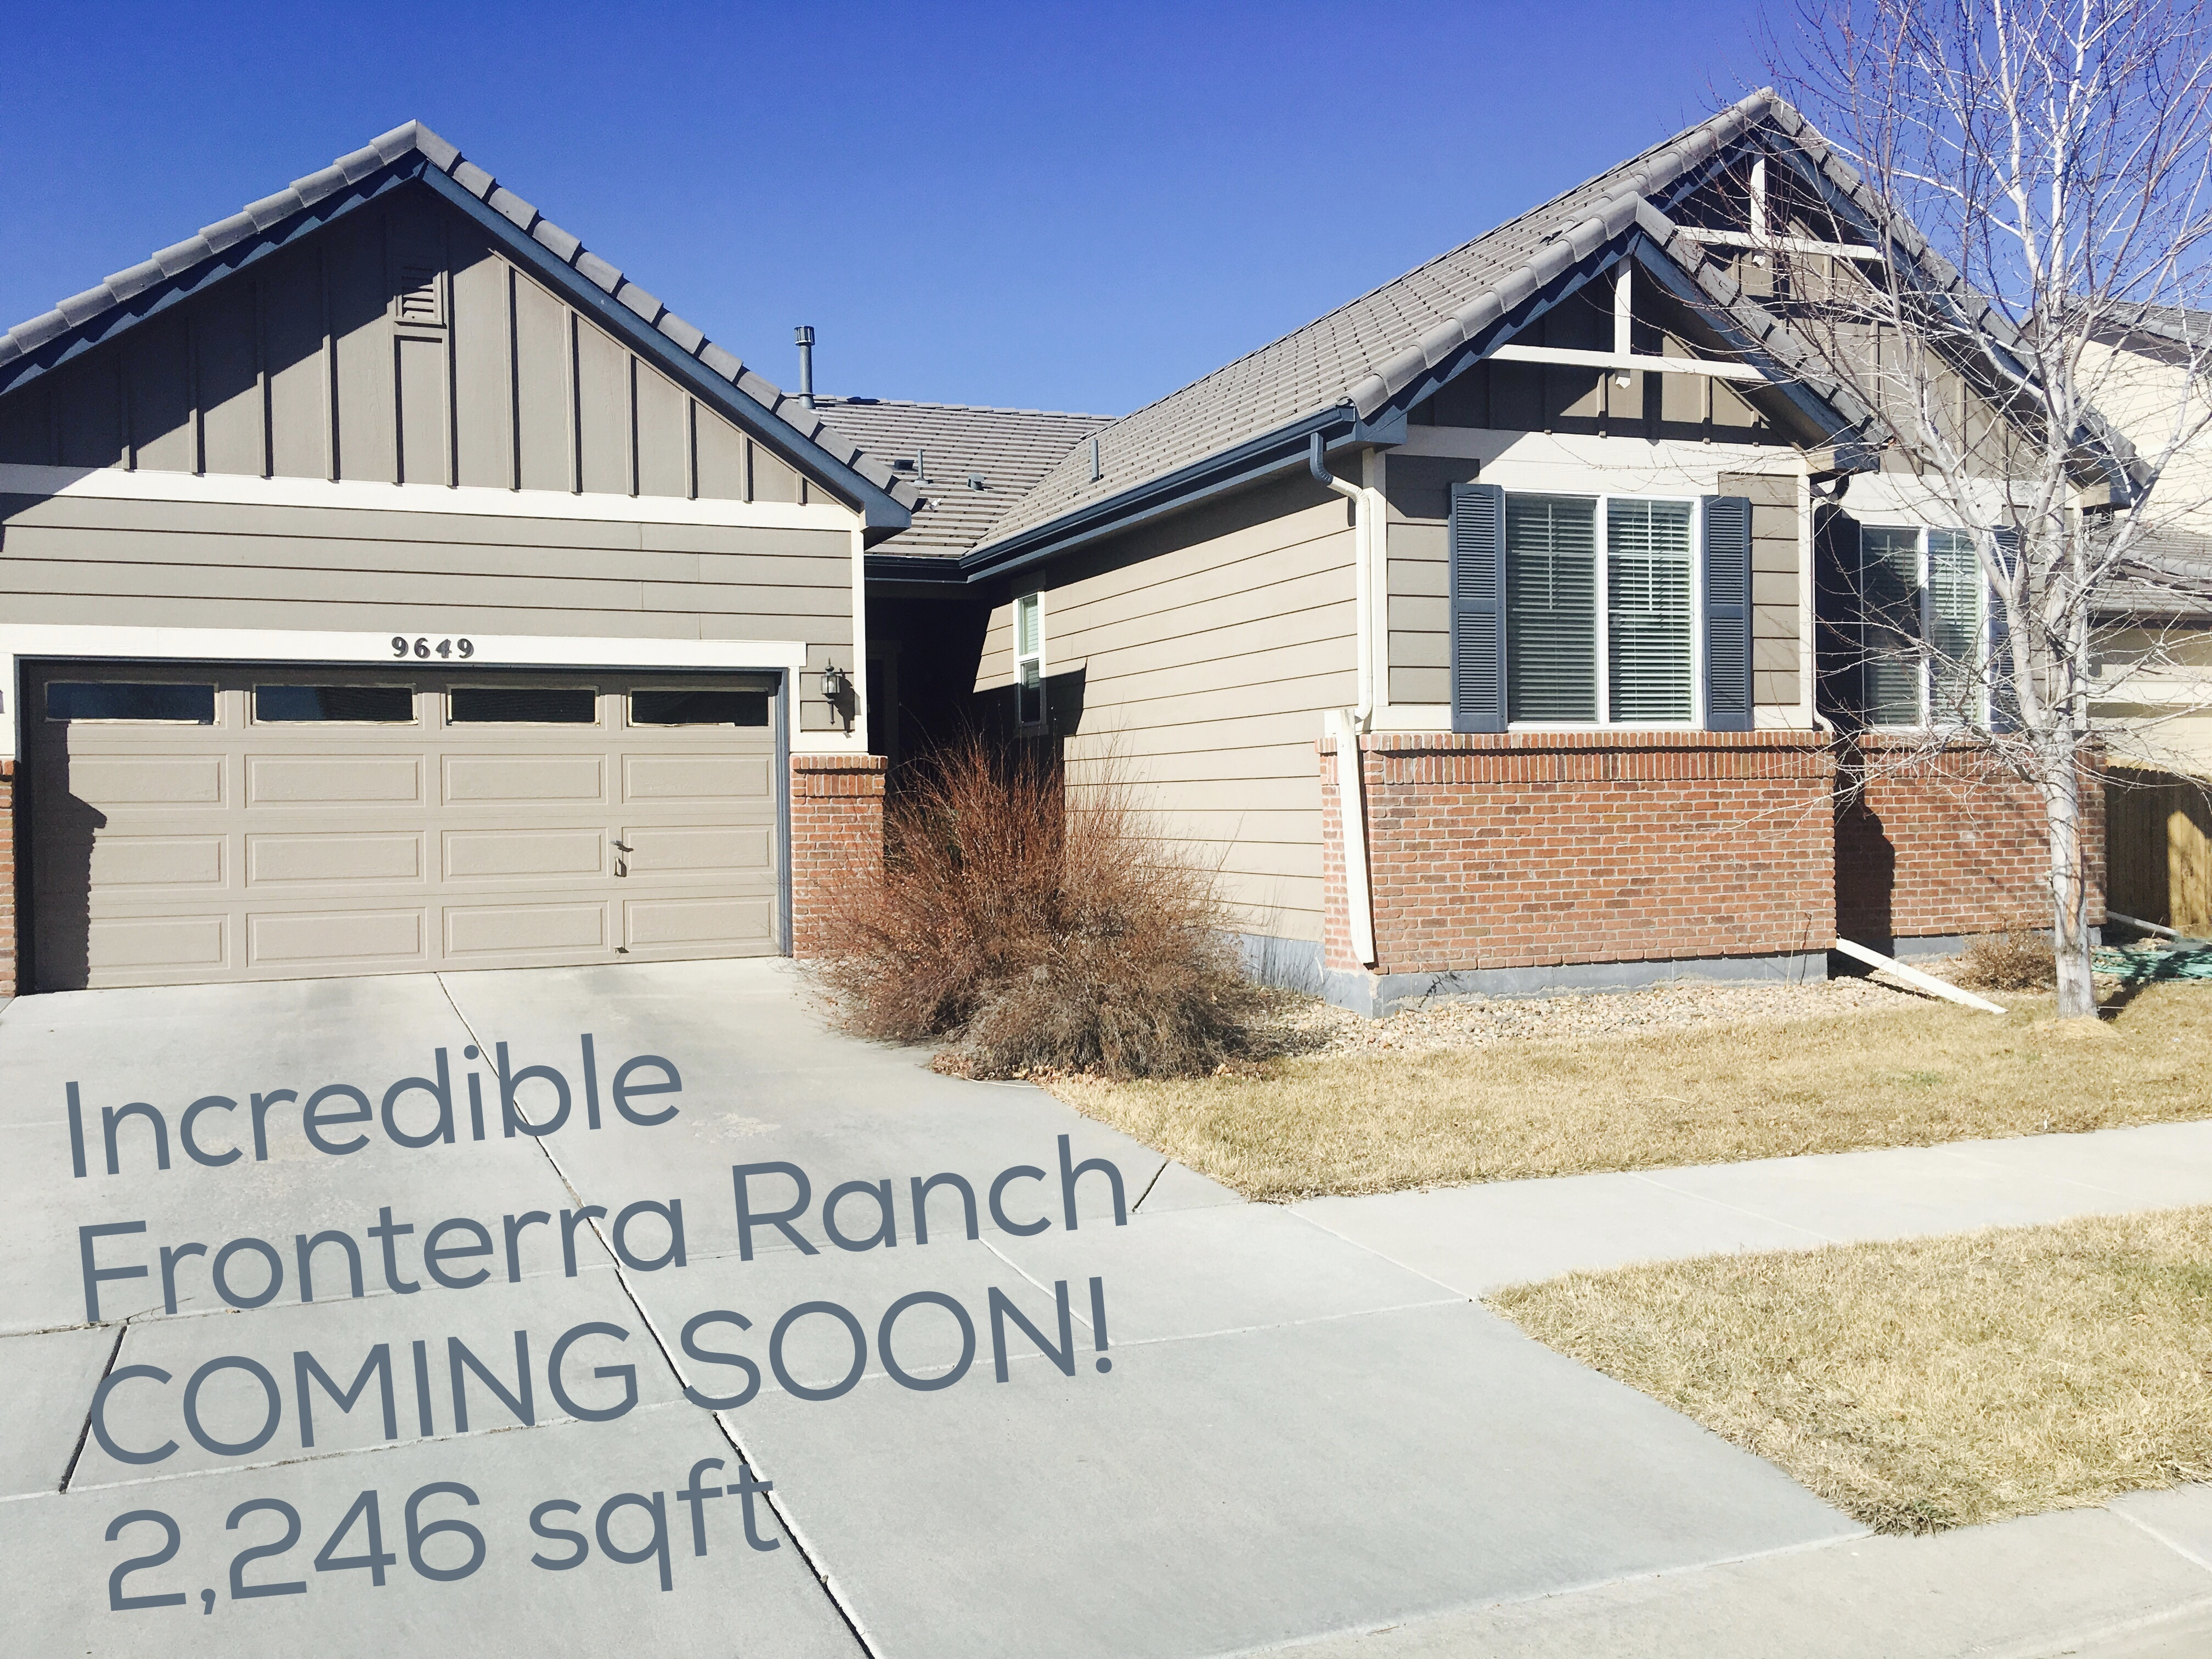 denver area home for sale under 400k